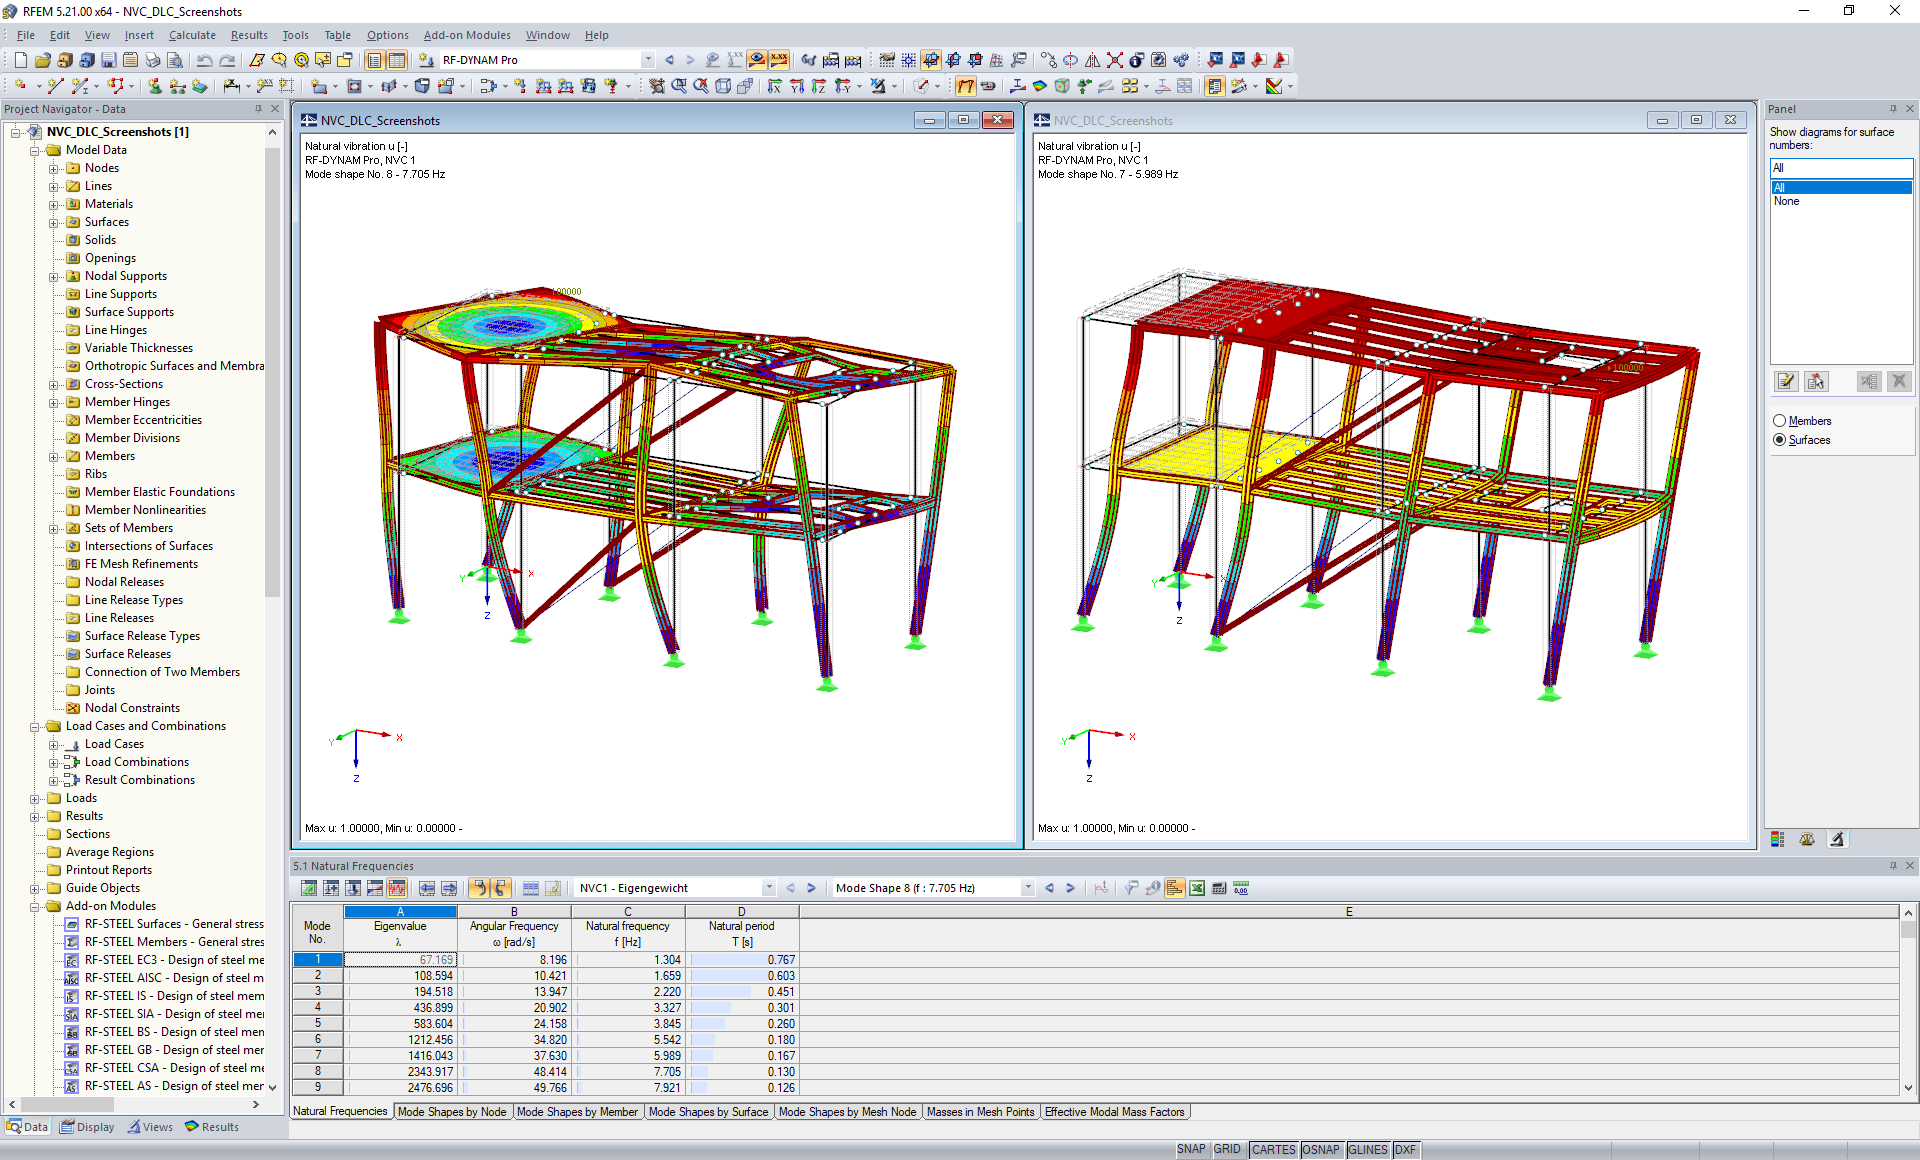 Modal Analysis in RFEM - Tabular and Graphical Evaluation